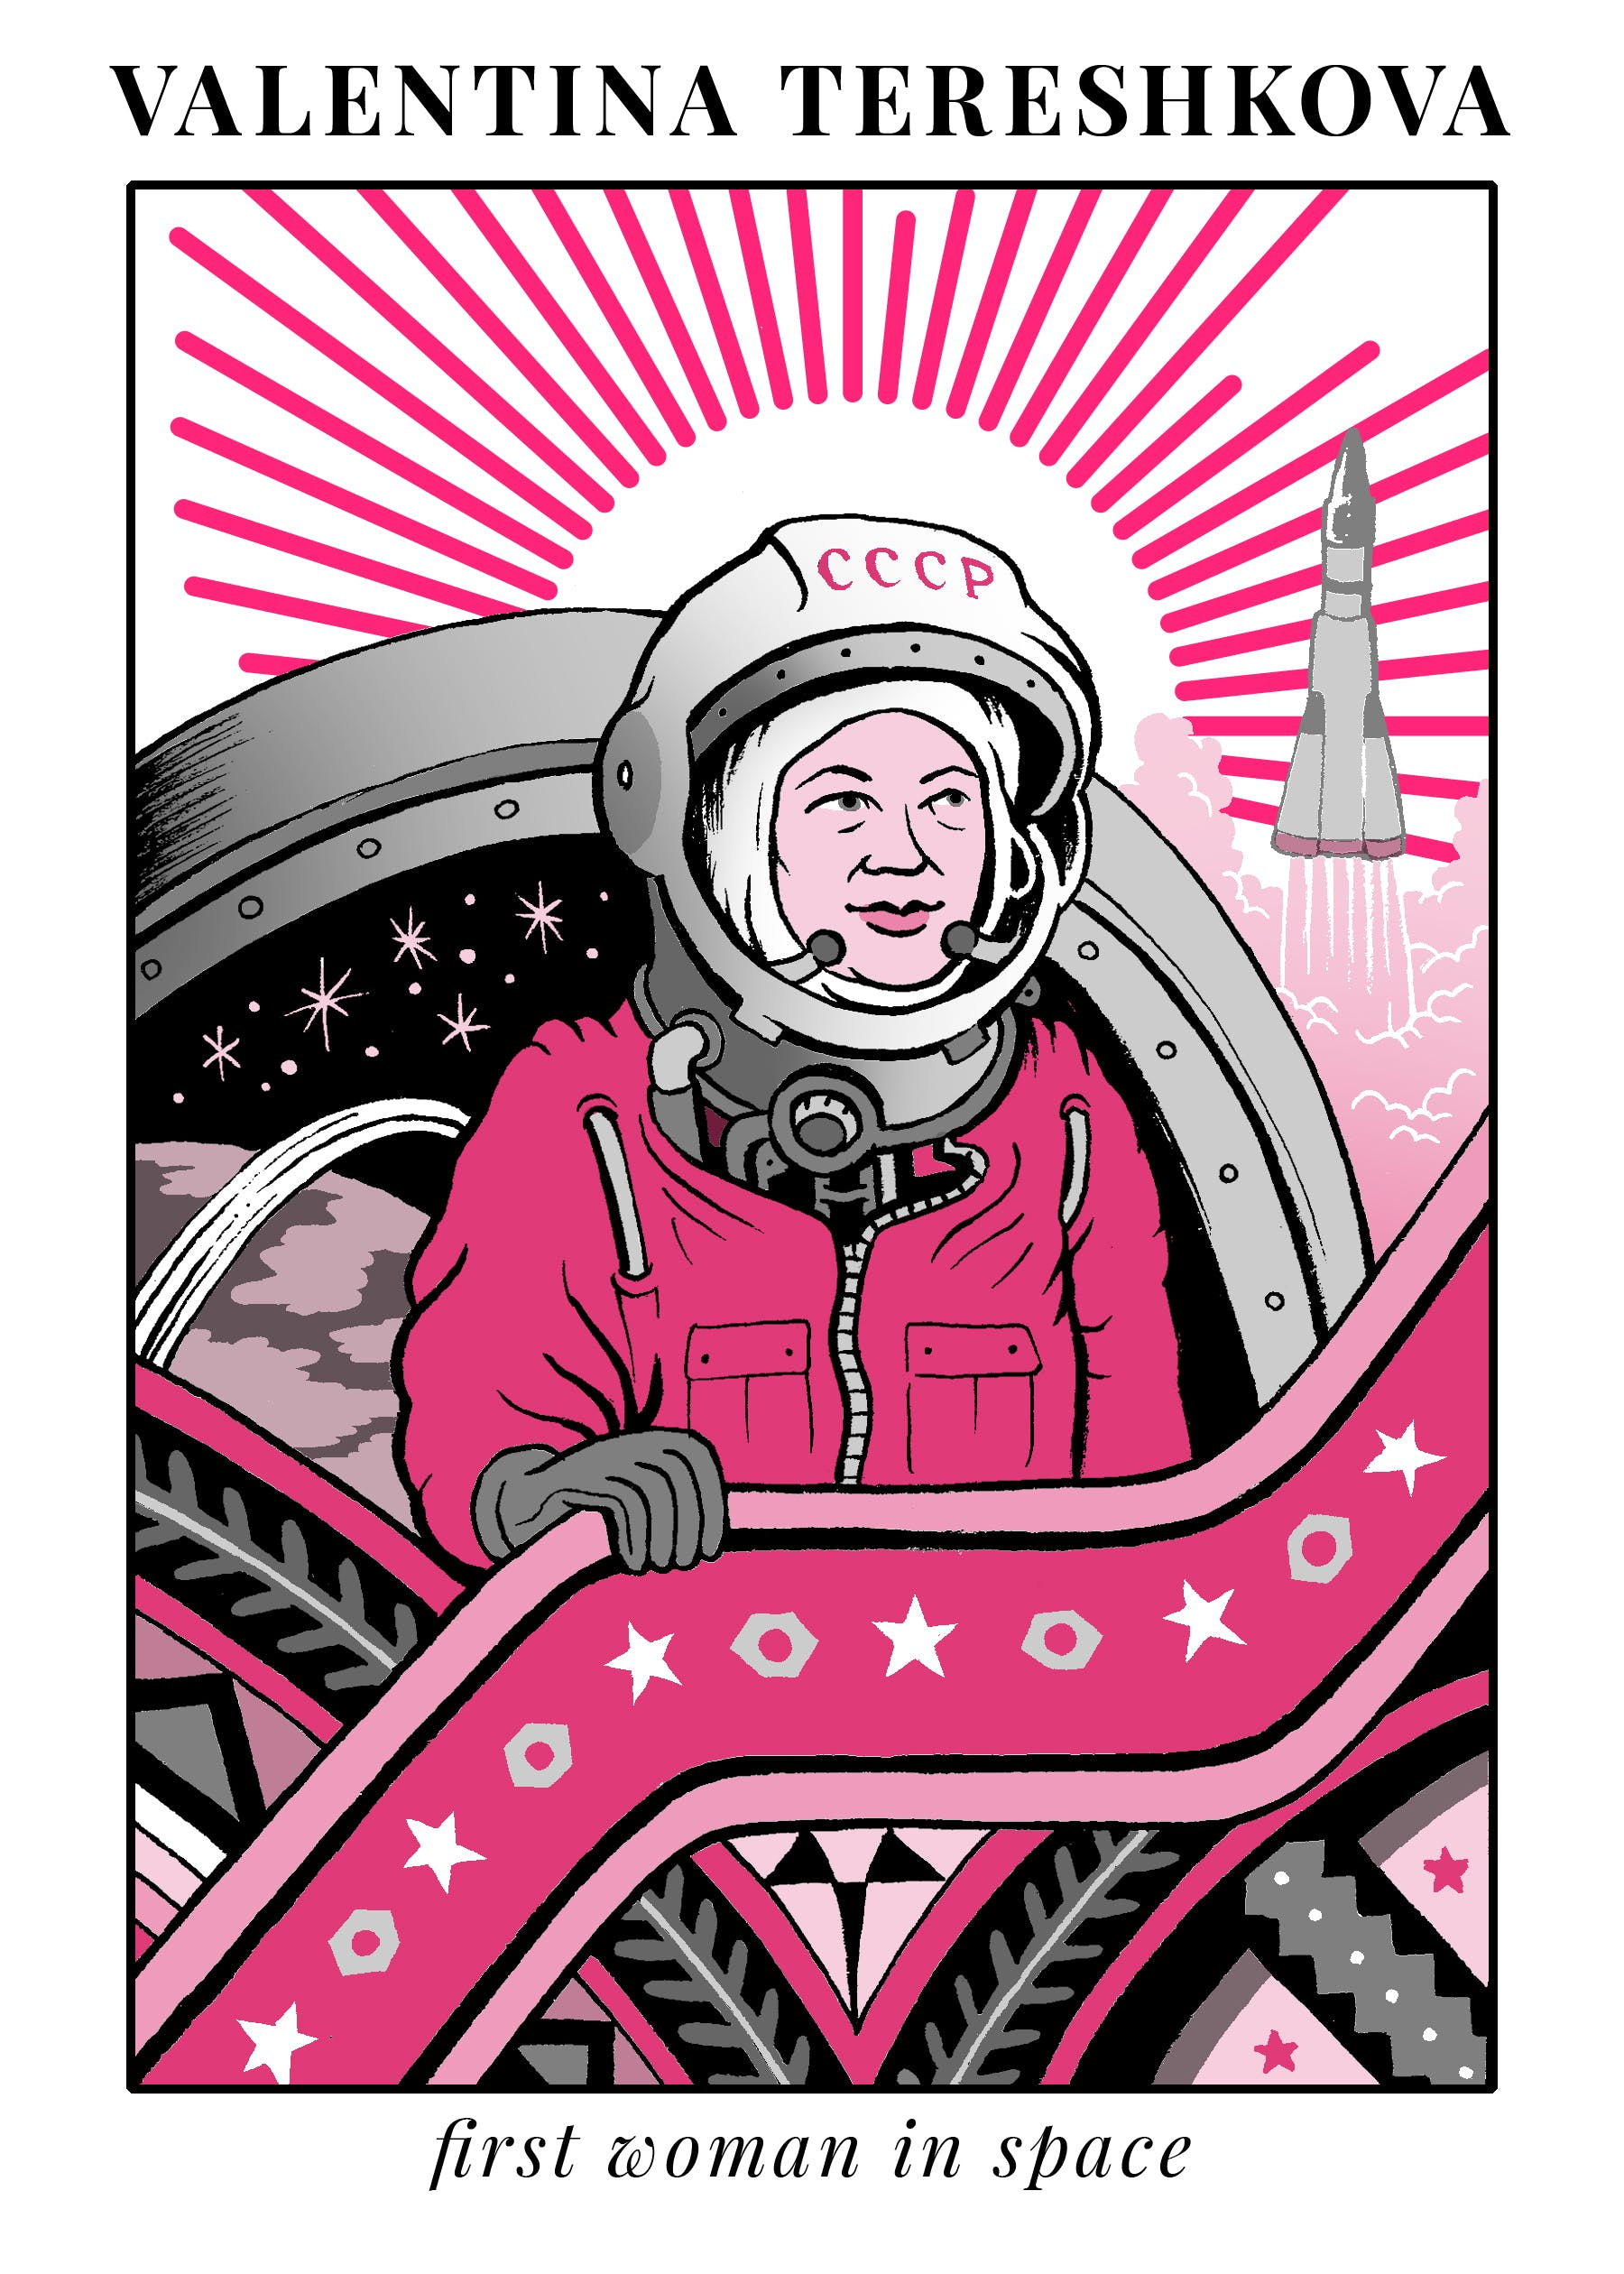 five facts about valentina tereshkova the first woman in space